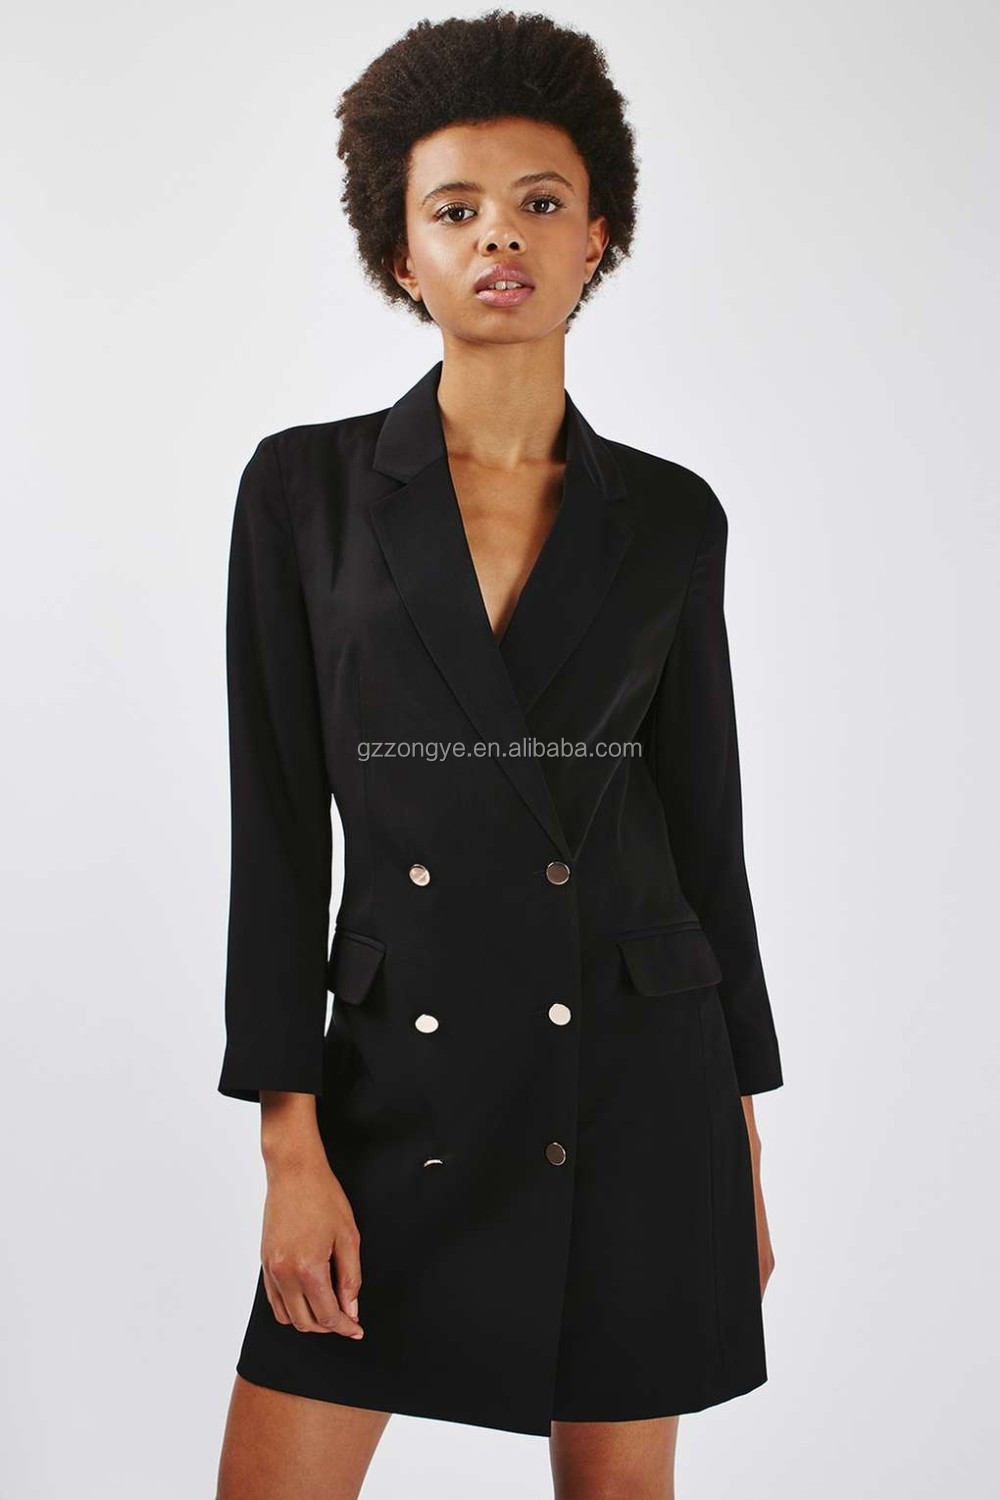 '80s Double Breasted and button women Blazer Dress